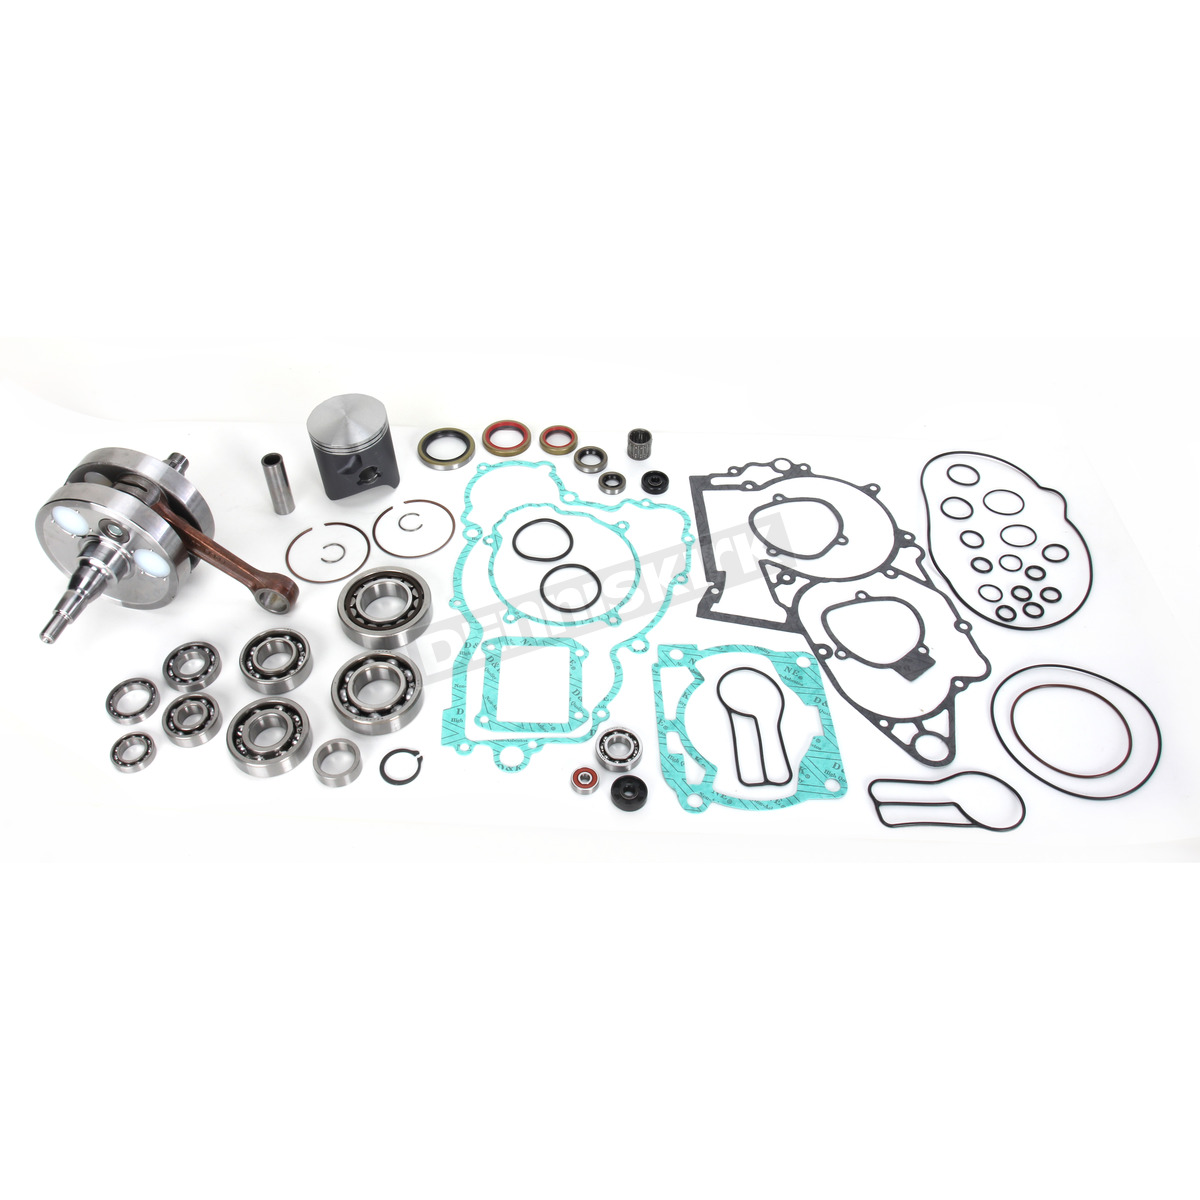 Wrench Rabbit Complete Engine Rebuild Kit 66 4mm Bore